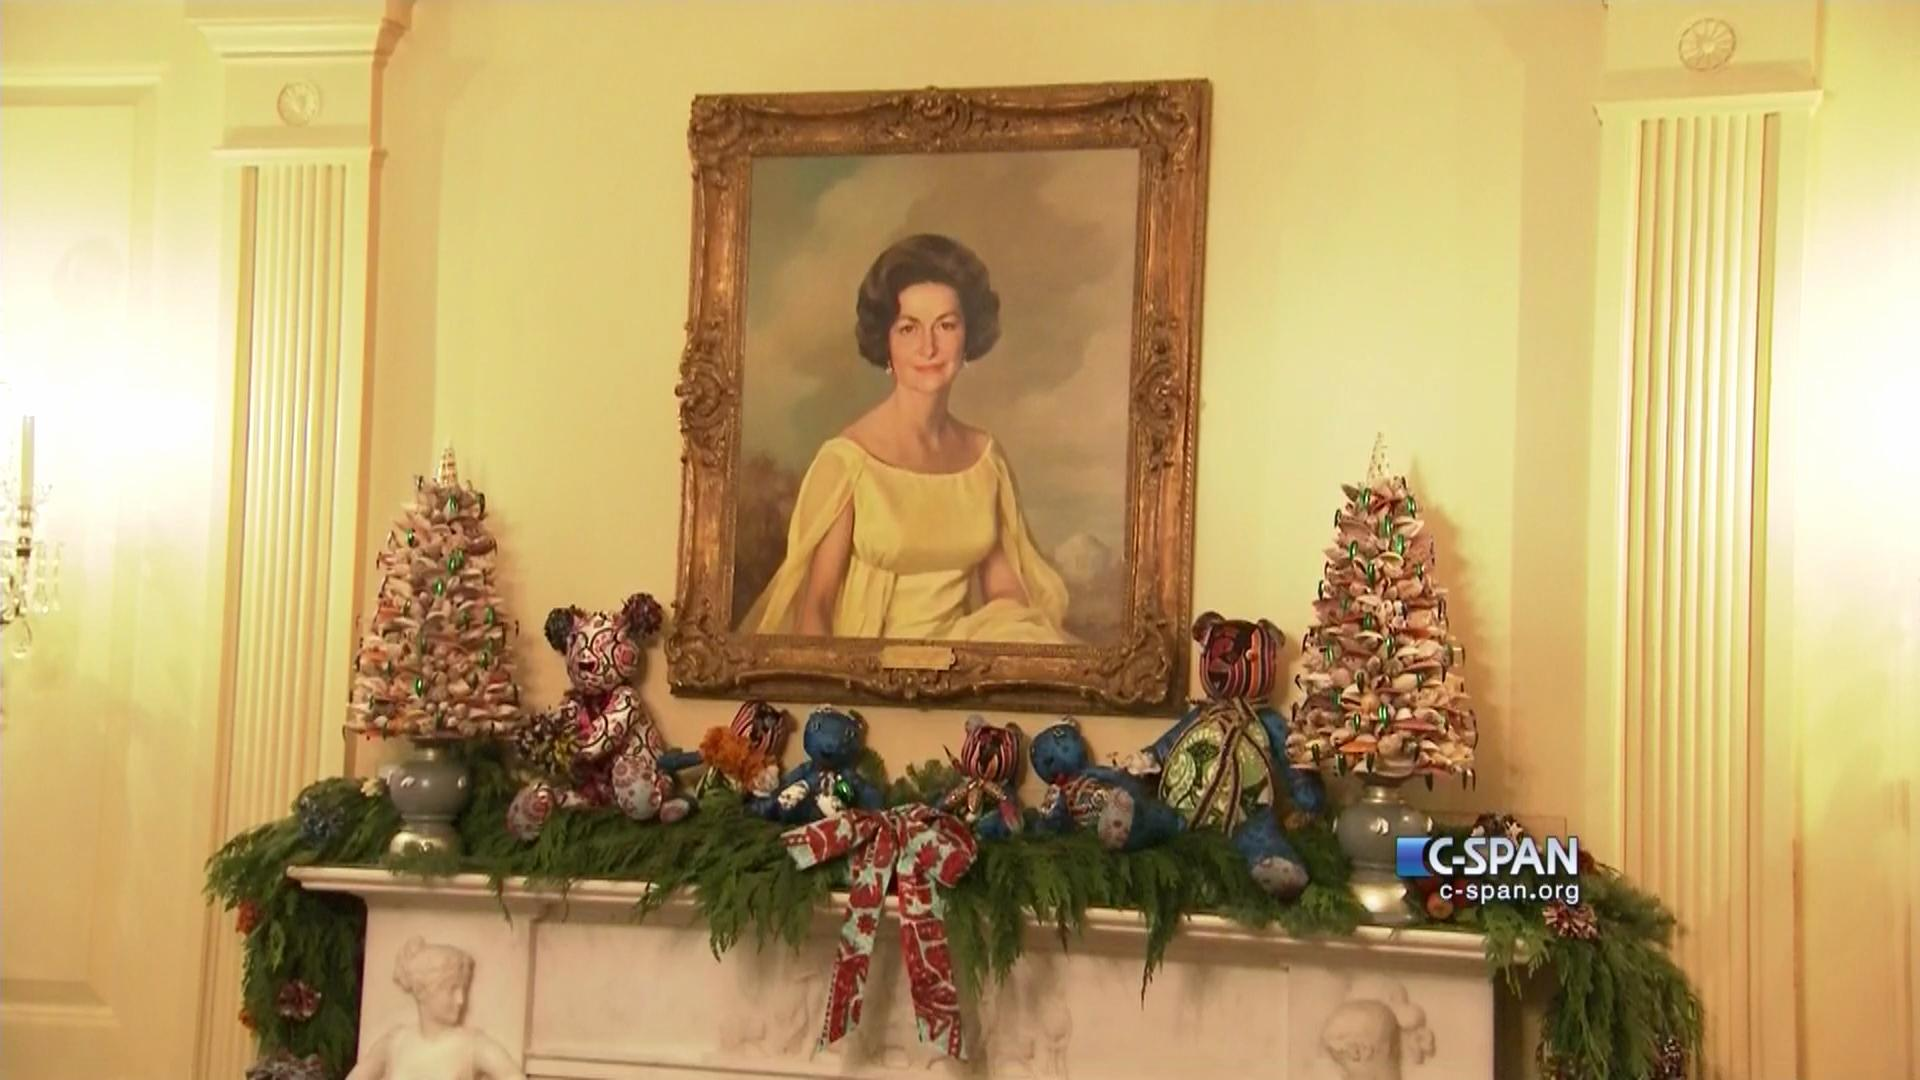 tour white house christmas decorations dec 2 2015 video c spanorg - White House Christmas Decorations 2016